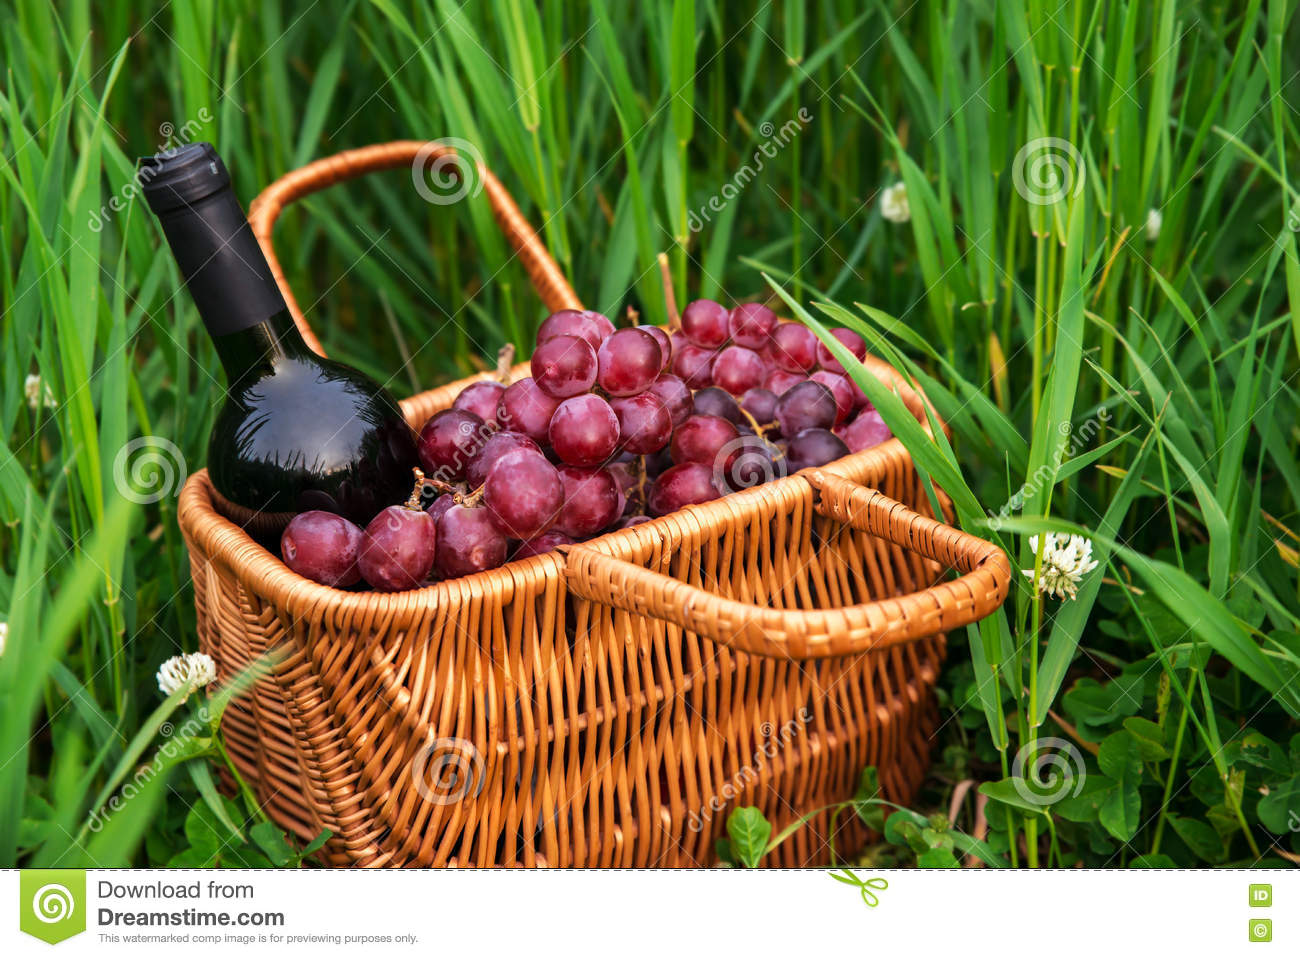 Picnic basket with wine bottle and grapes on green grass lawn.